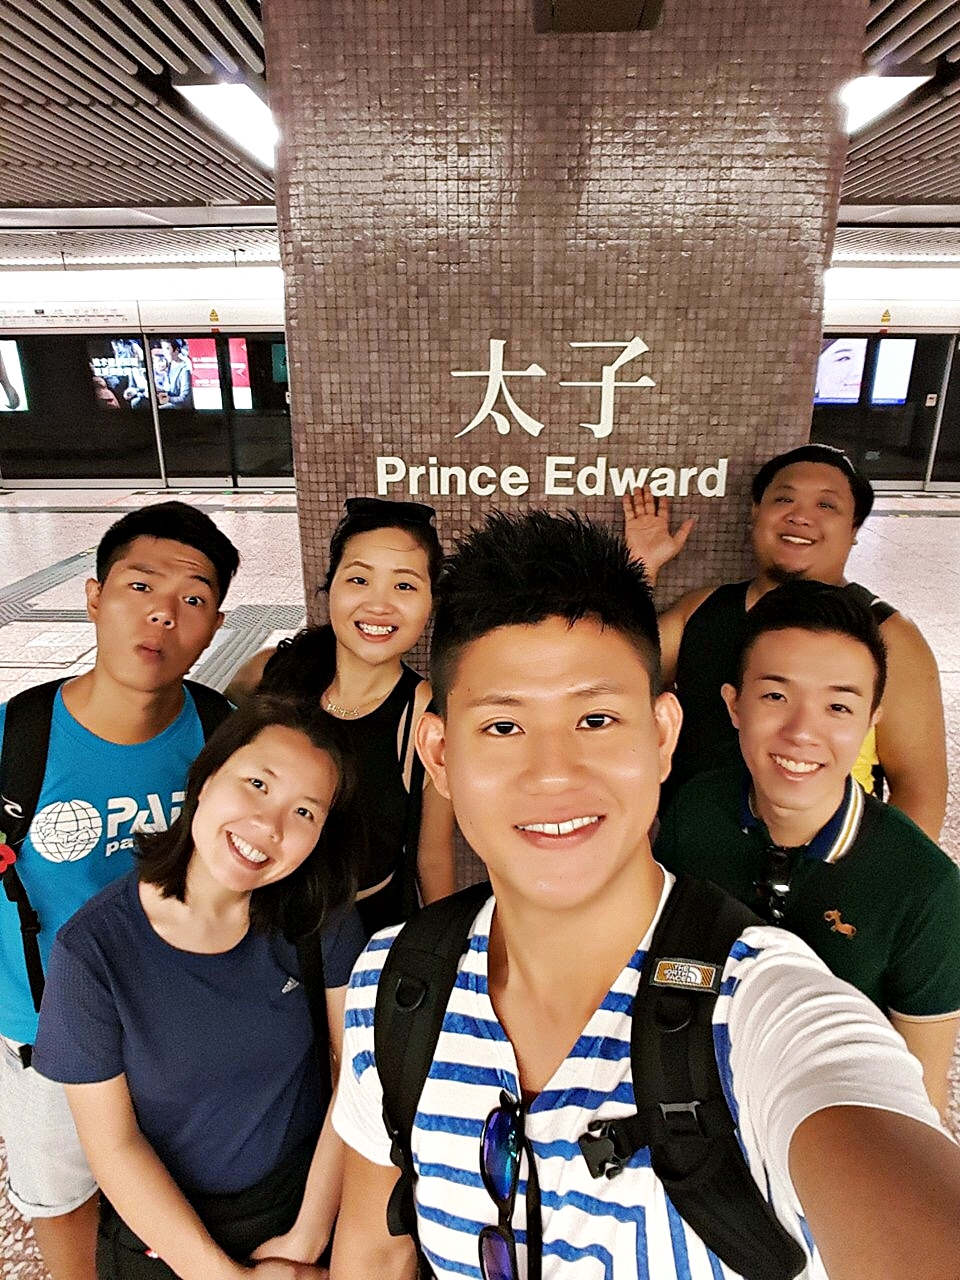 7 Nov 2015: Prince Edward MTR Station | Mong Kok, Hong Kong